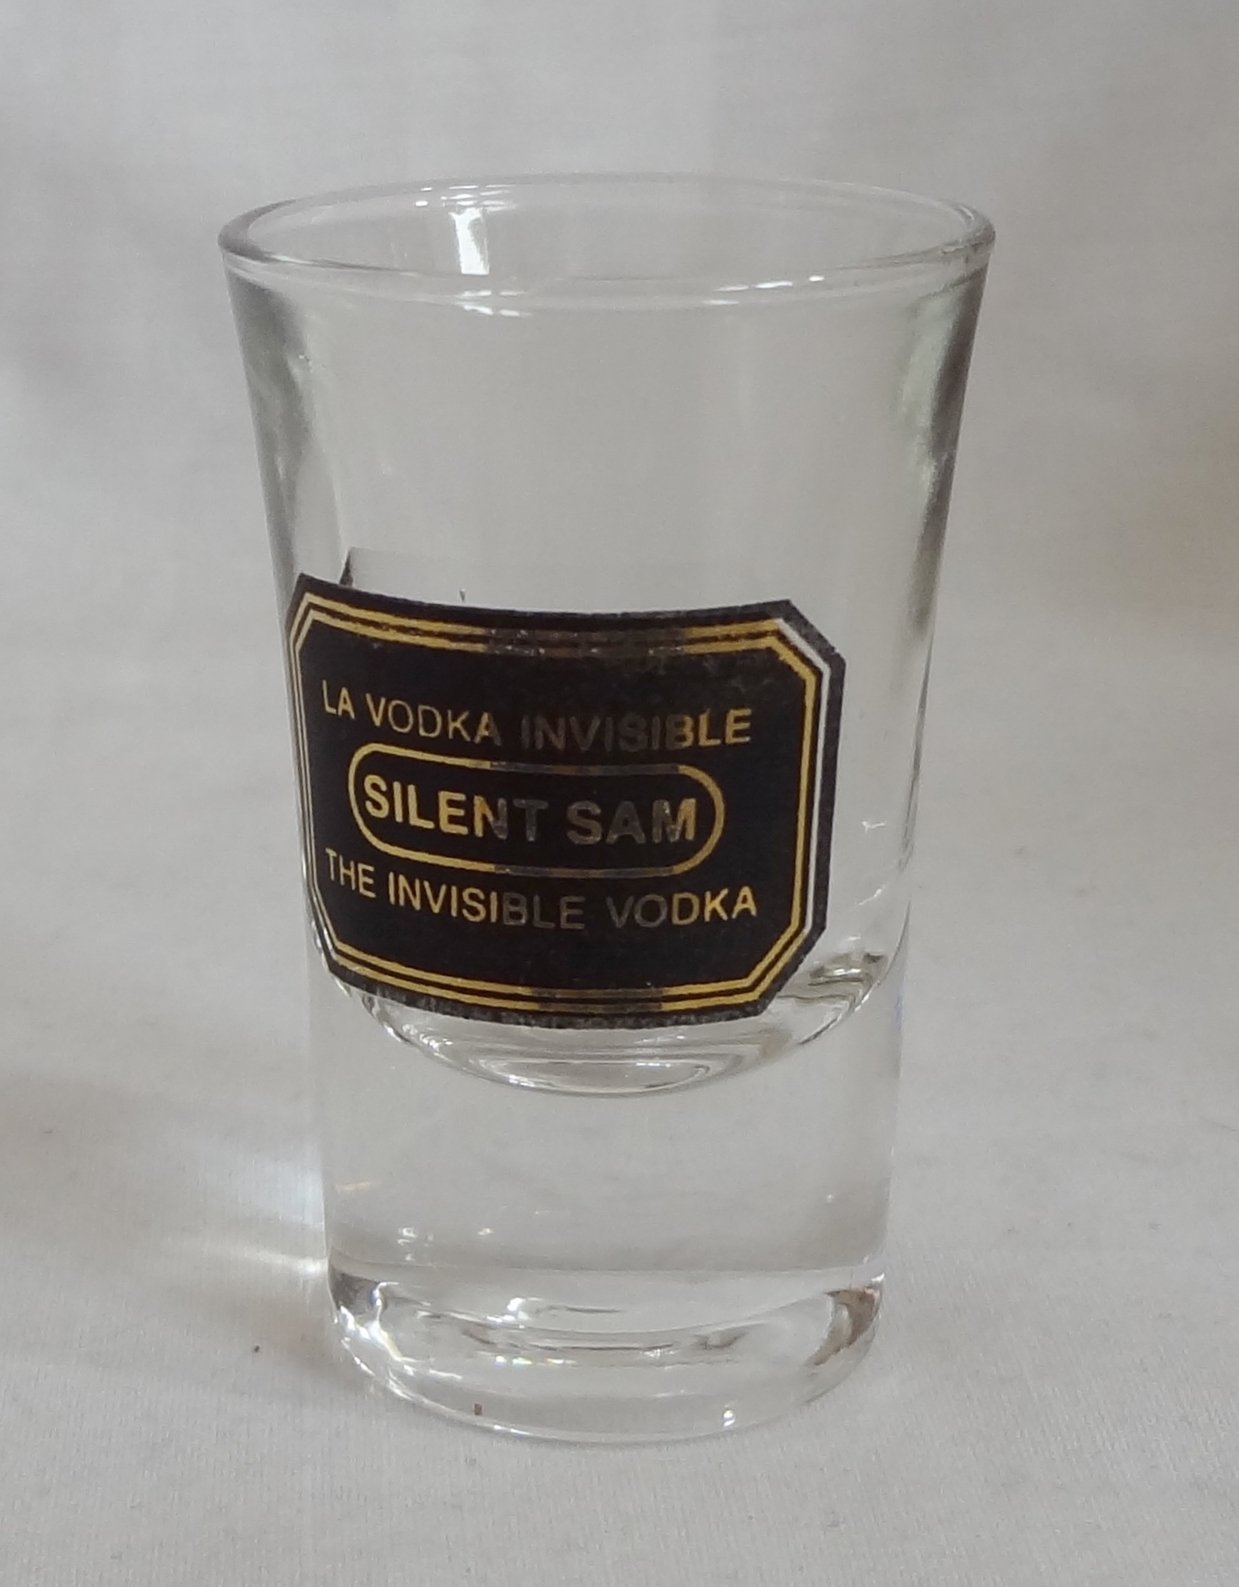 Primary image for Silent Sam The Invisible Vodka 1 oz Shot Glass Barware Black Gold Logo